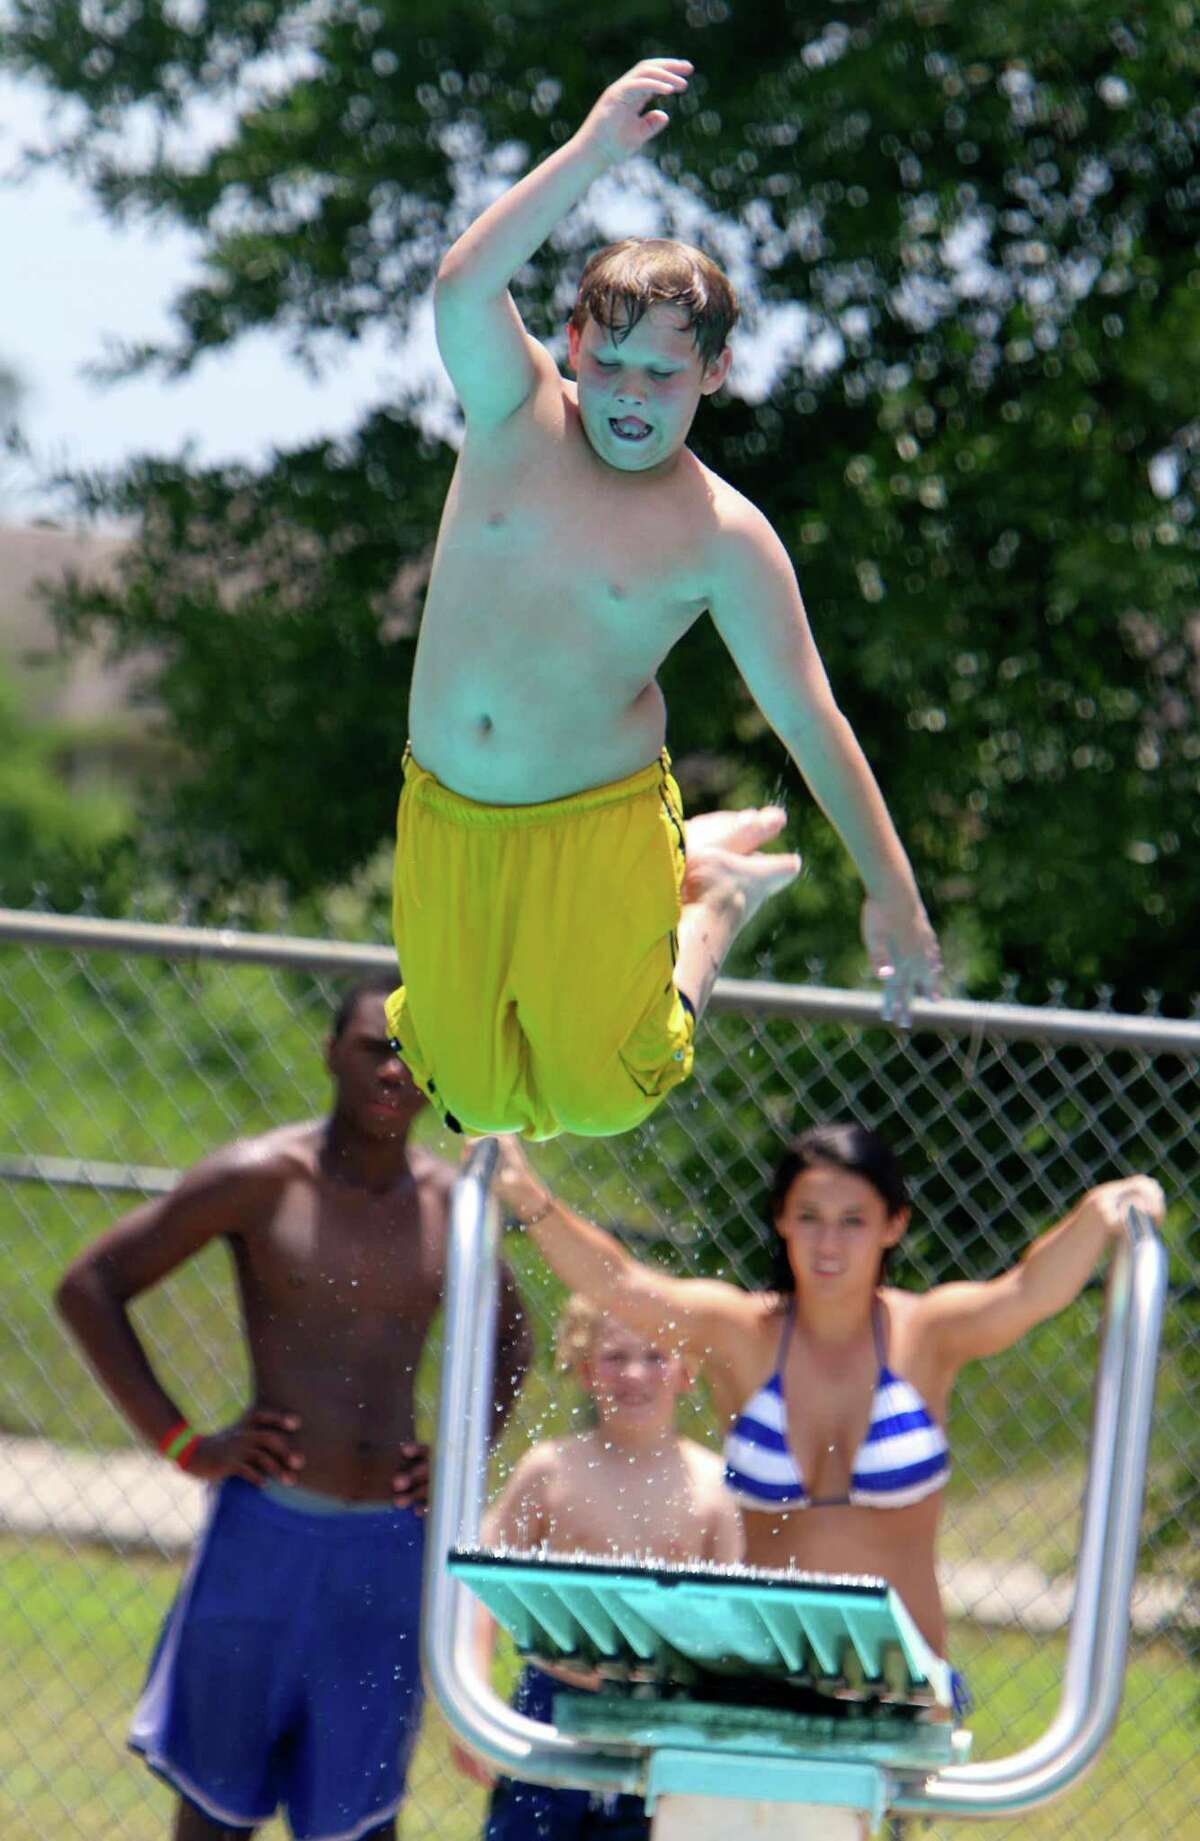 The seven pools that will reopen on June 6 are: Alden Bridge, Sawmill, Forestgate, Bear Branch, Wendtwoods, Harper's Landing and Creekwood. The fee structure for the 2020 season only is as follows: resident day pass costs were reduced from $6 to $5; the non-resident day pass cost was decreased from $12 to $10; and season pass rates were kept at the normal $40 for residents and $120 for non-residents.